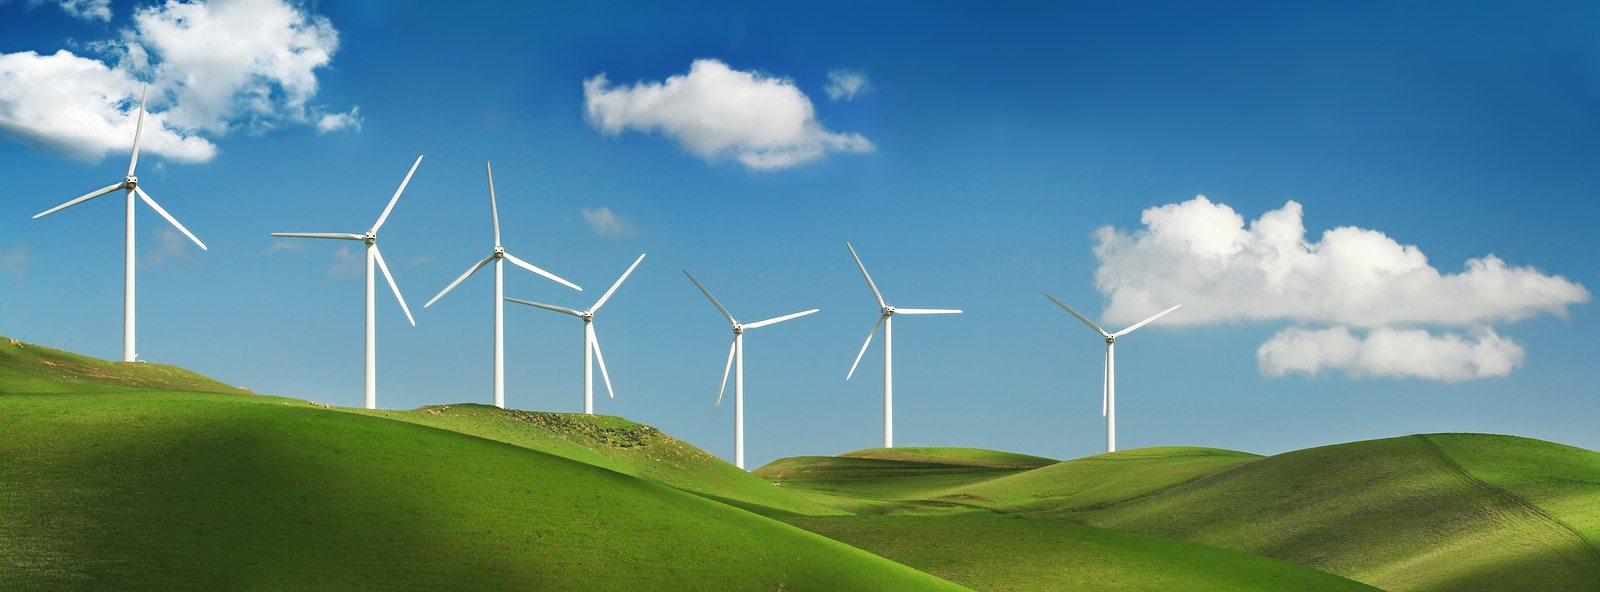 Largest offshore wind farms in U.S. OK'd over OC sight concerns